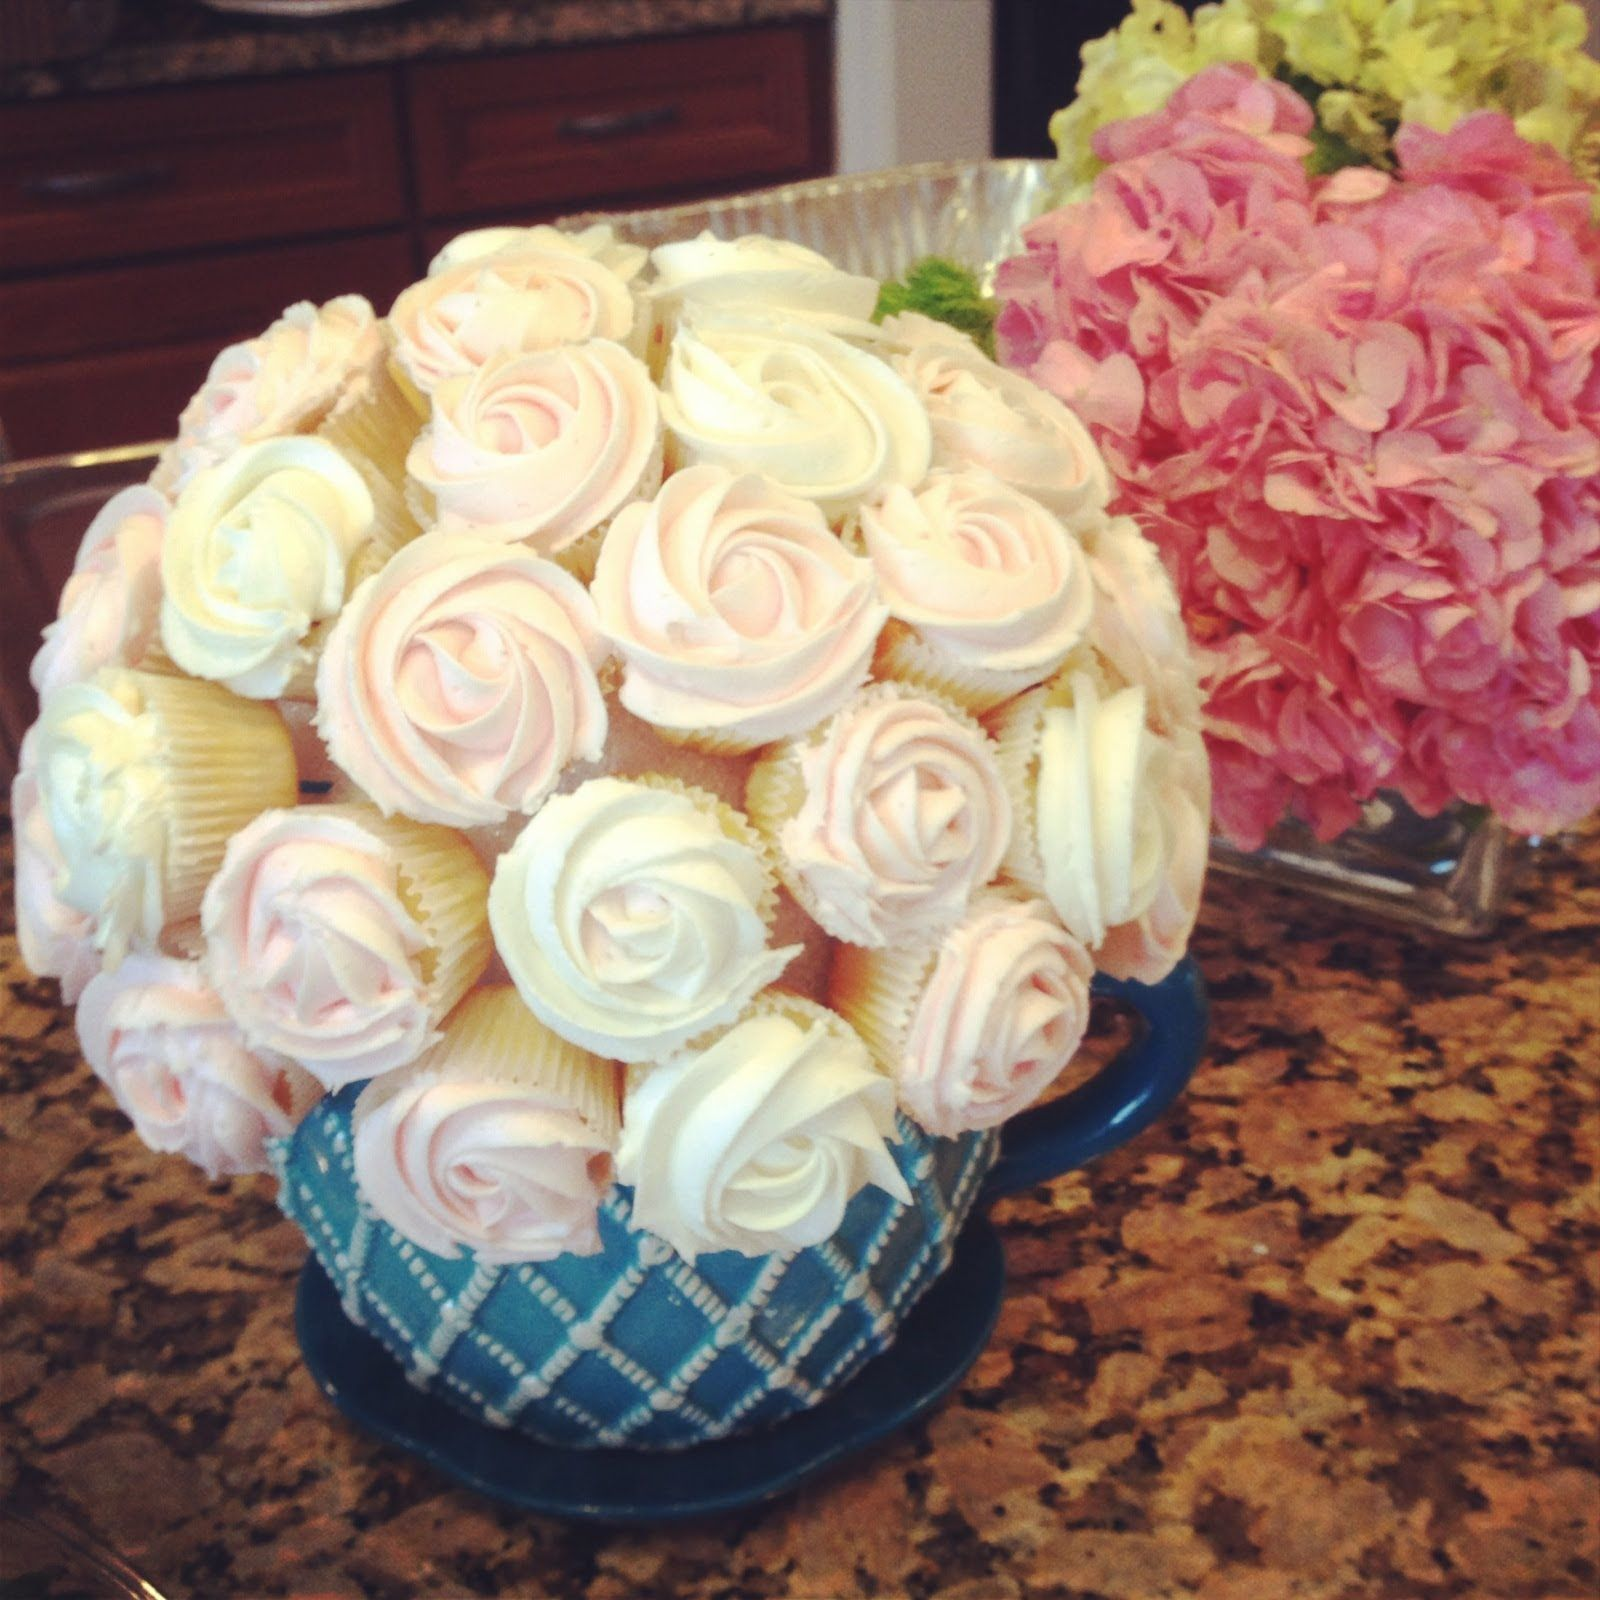 How to make a cupcake flower boquet cake an desserts pinterest in this video anh creates cupcake flower bouquets for a special party she creates 3 bouquets hydrangea roses and chrysanthemums izmirmasajfo Image collections